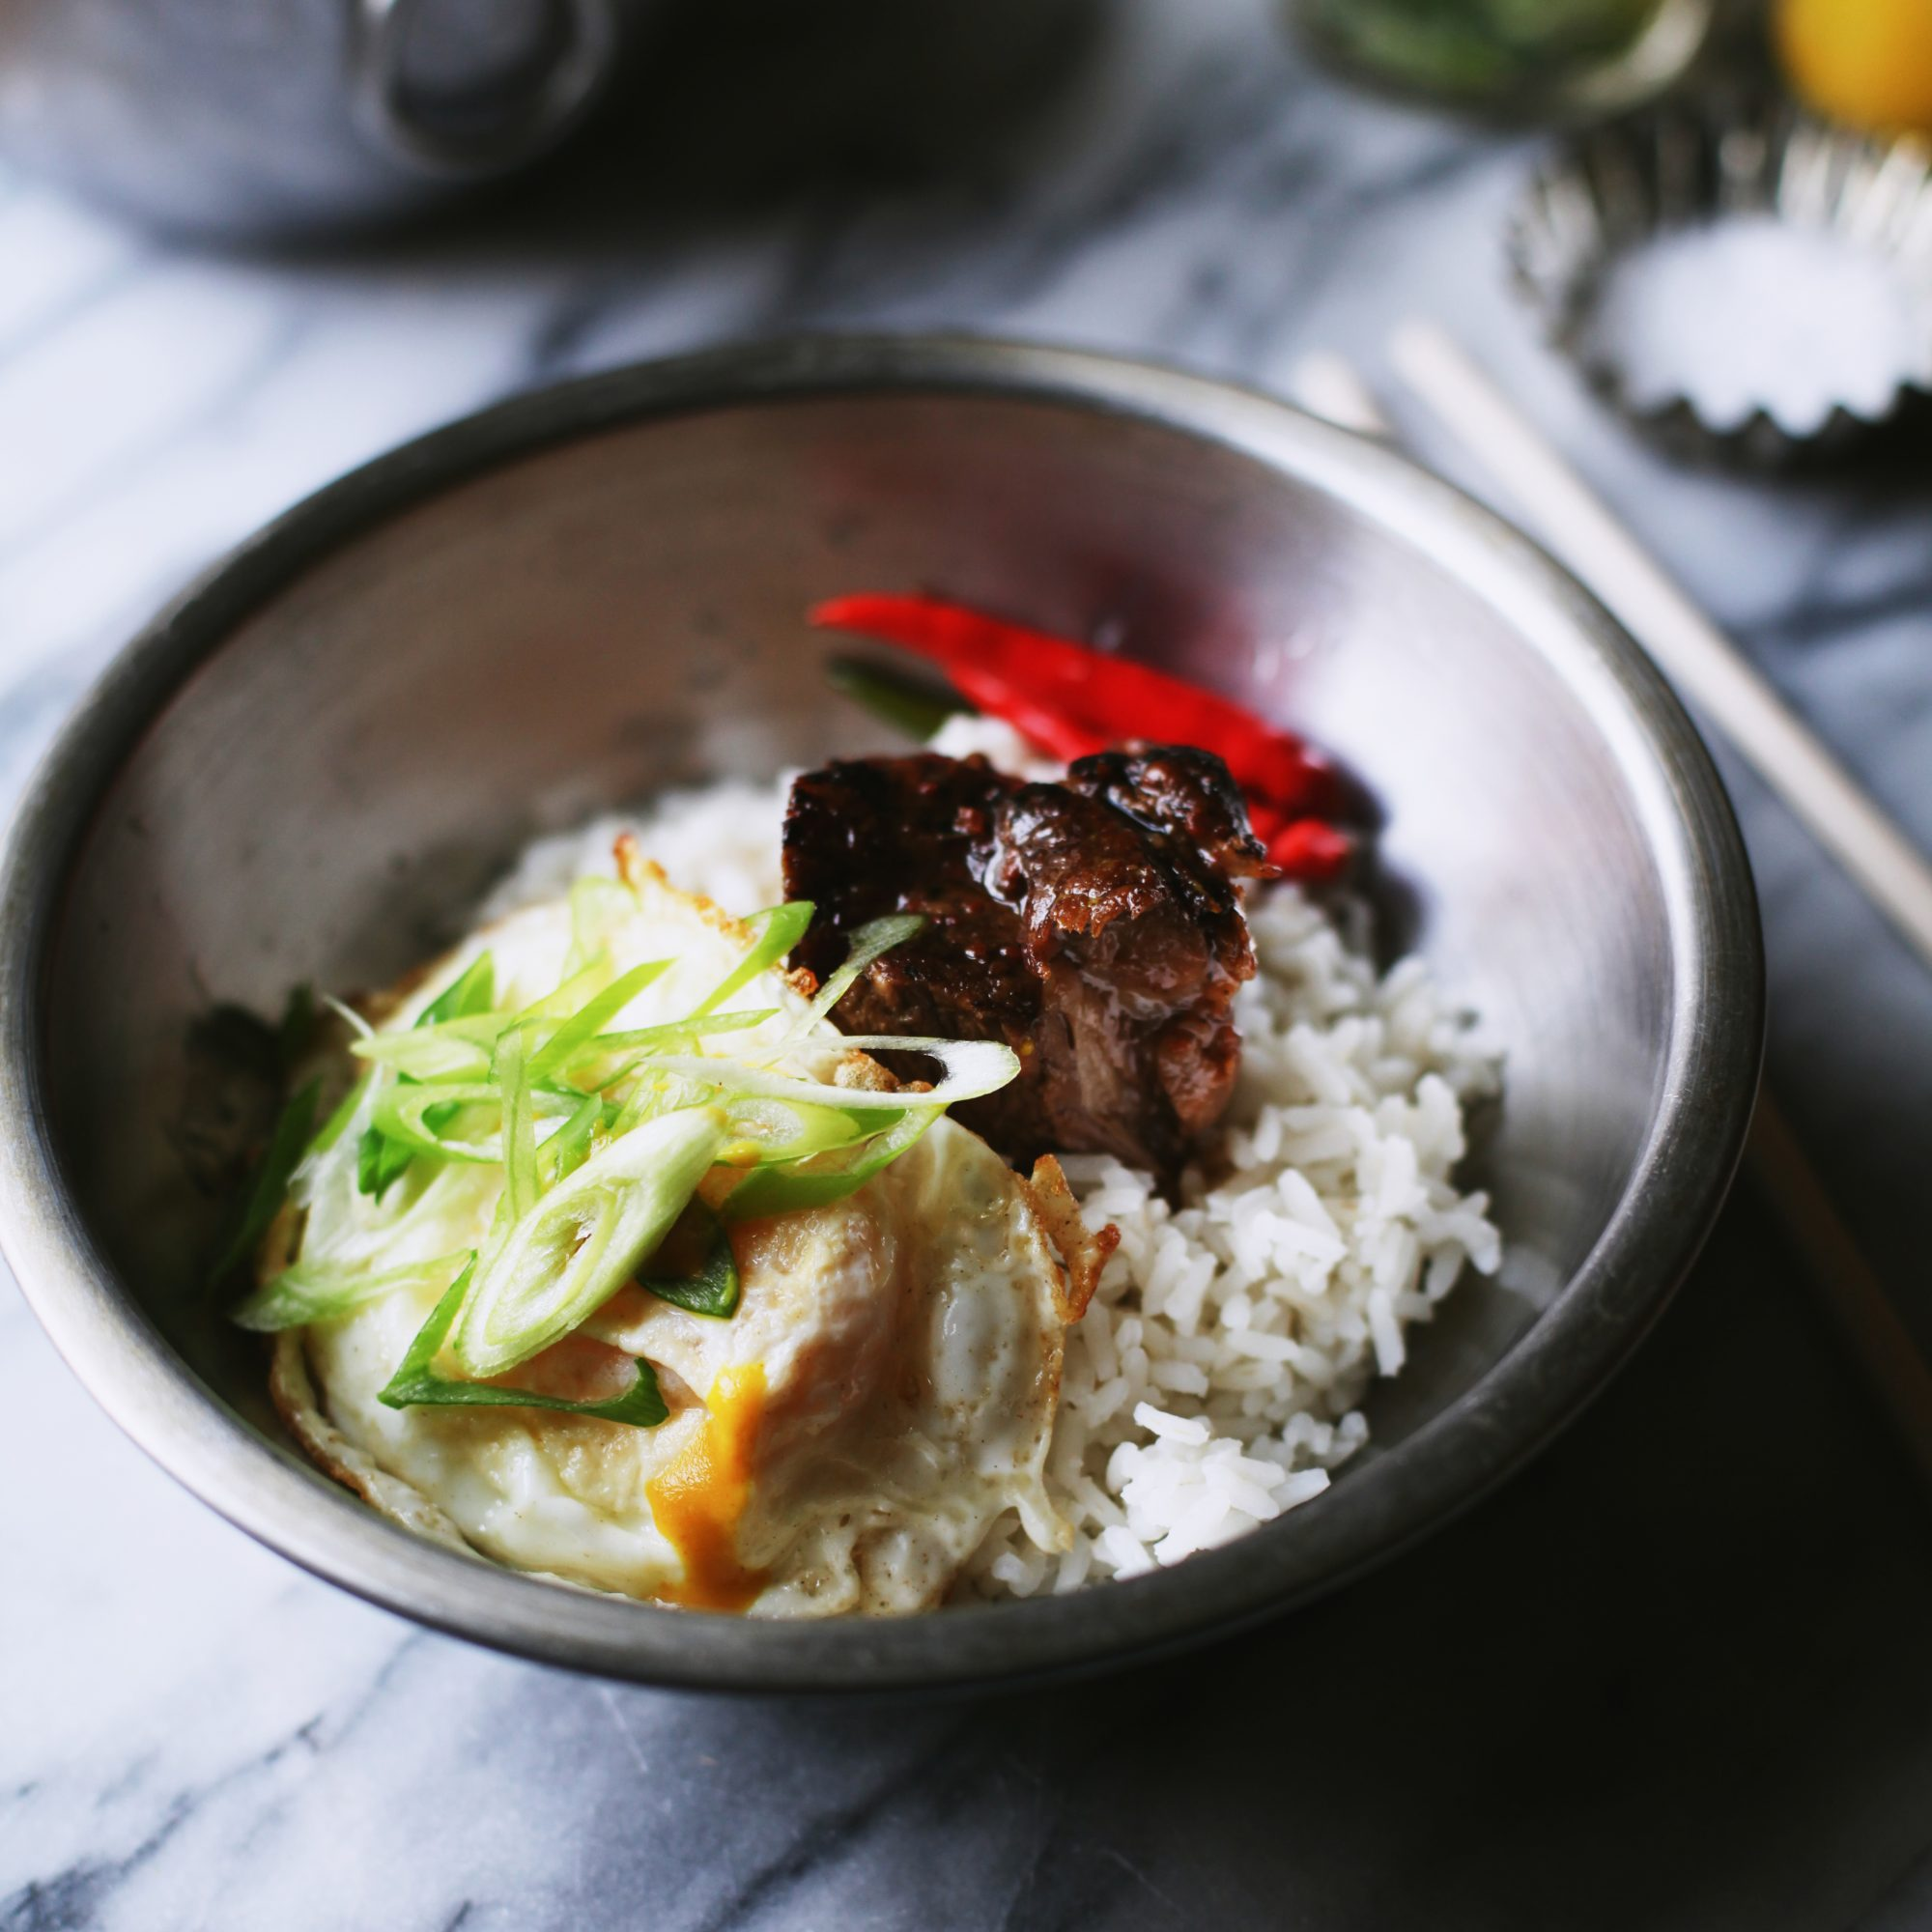 Braised Pork with Ginger-Pickled Shishito Peppers